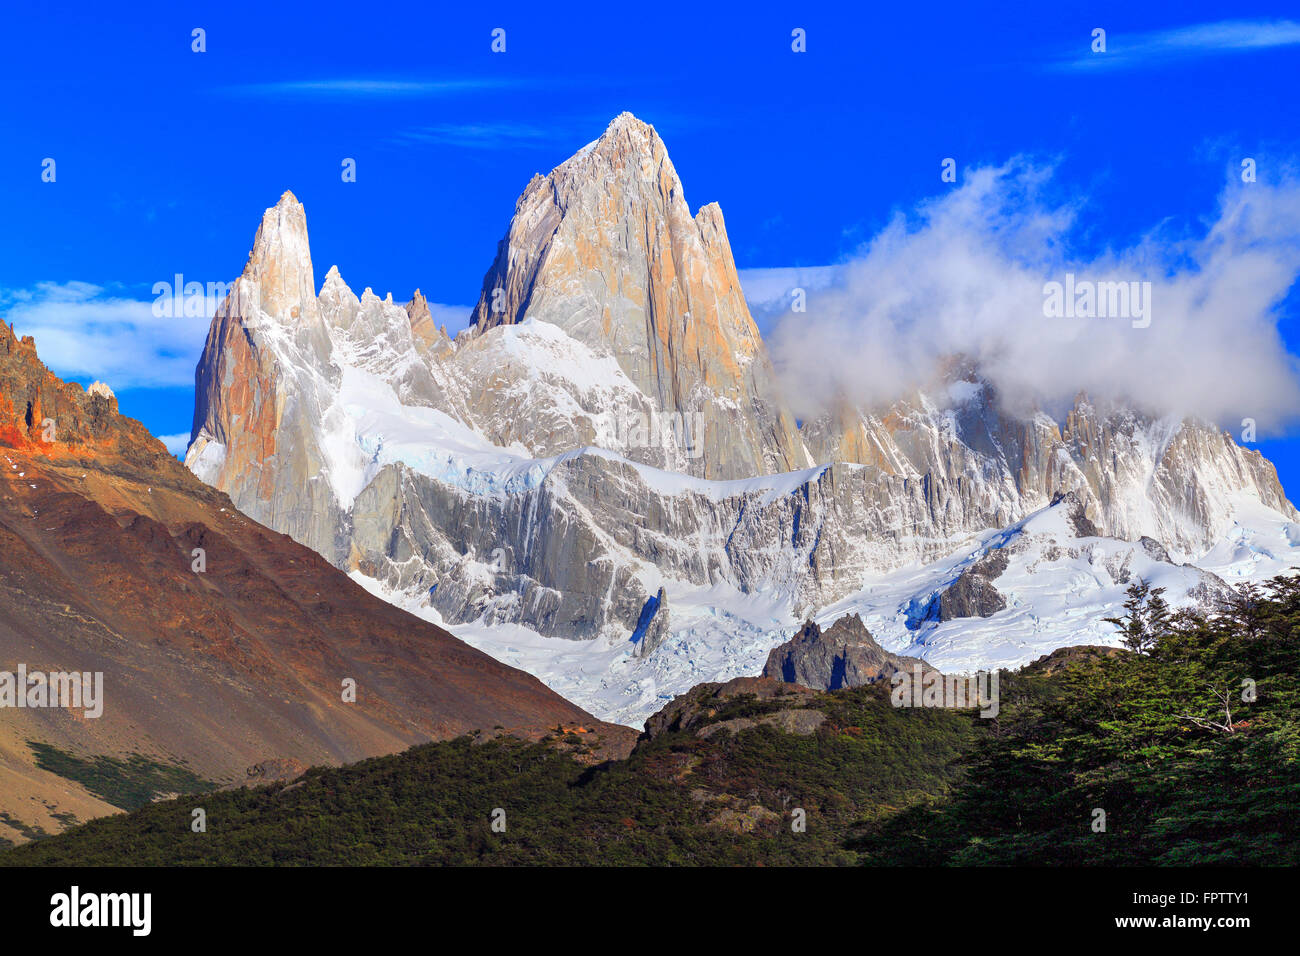 El Chalten, Santa Cruz, Patagonia Argentina Stock Photo